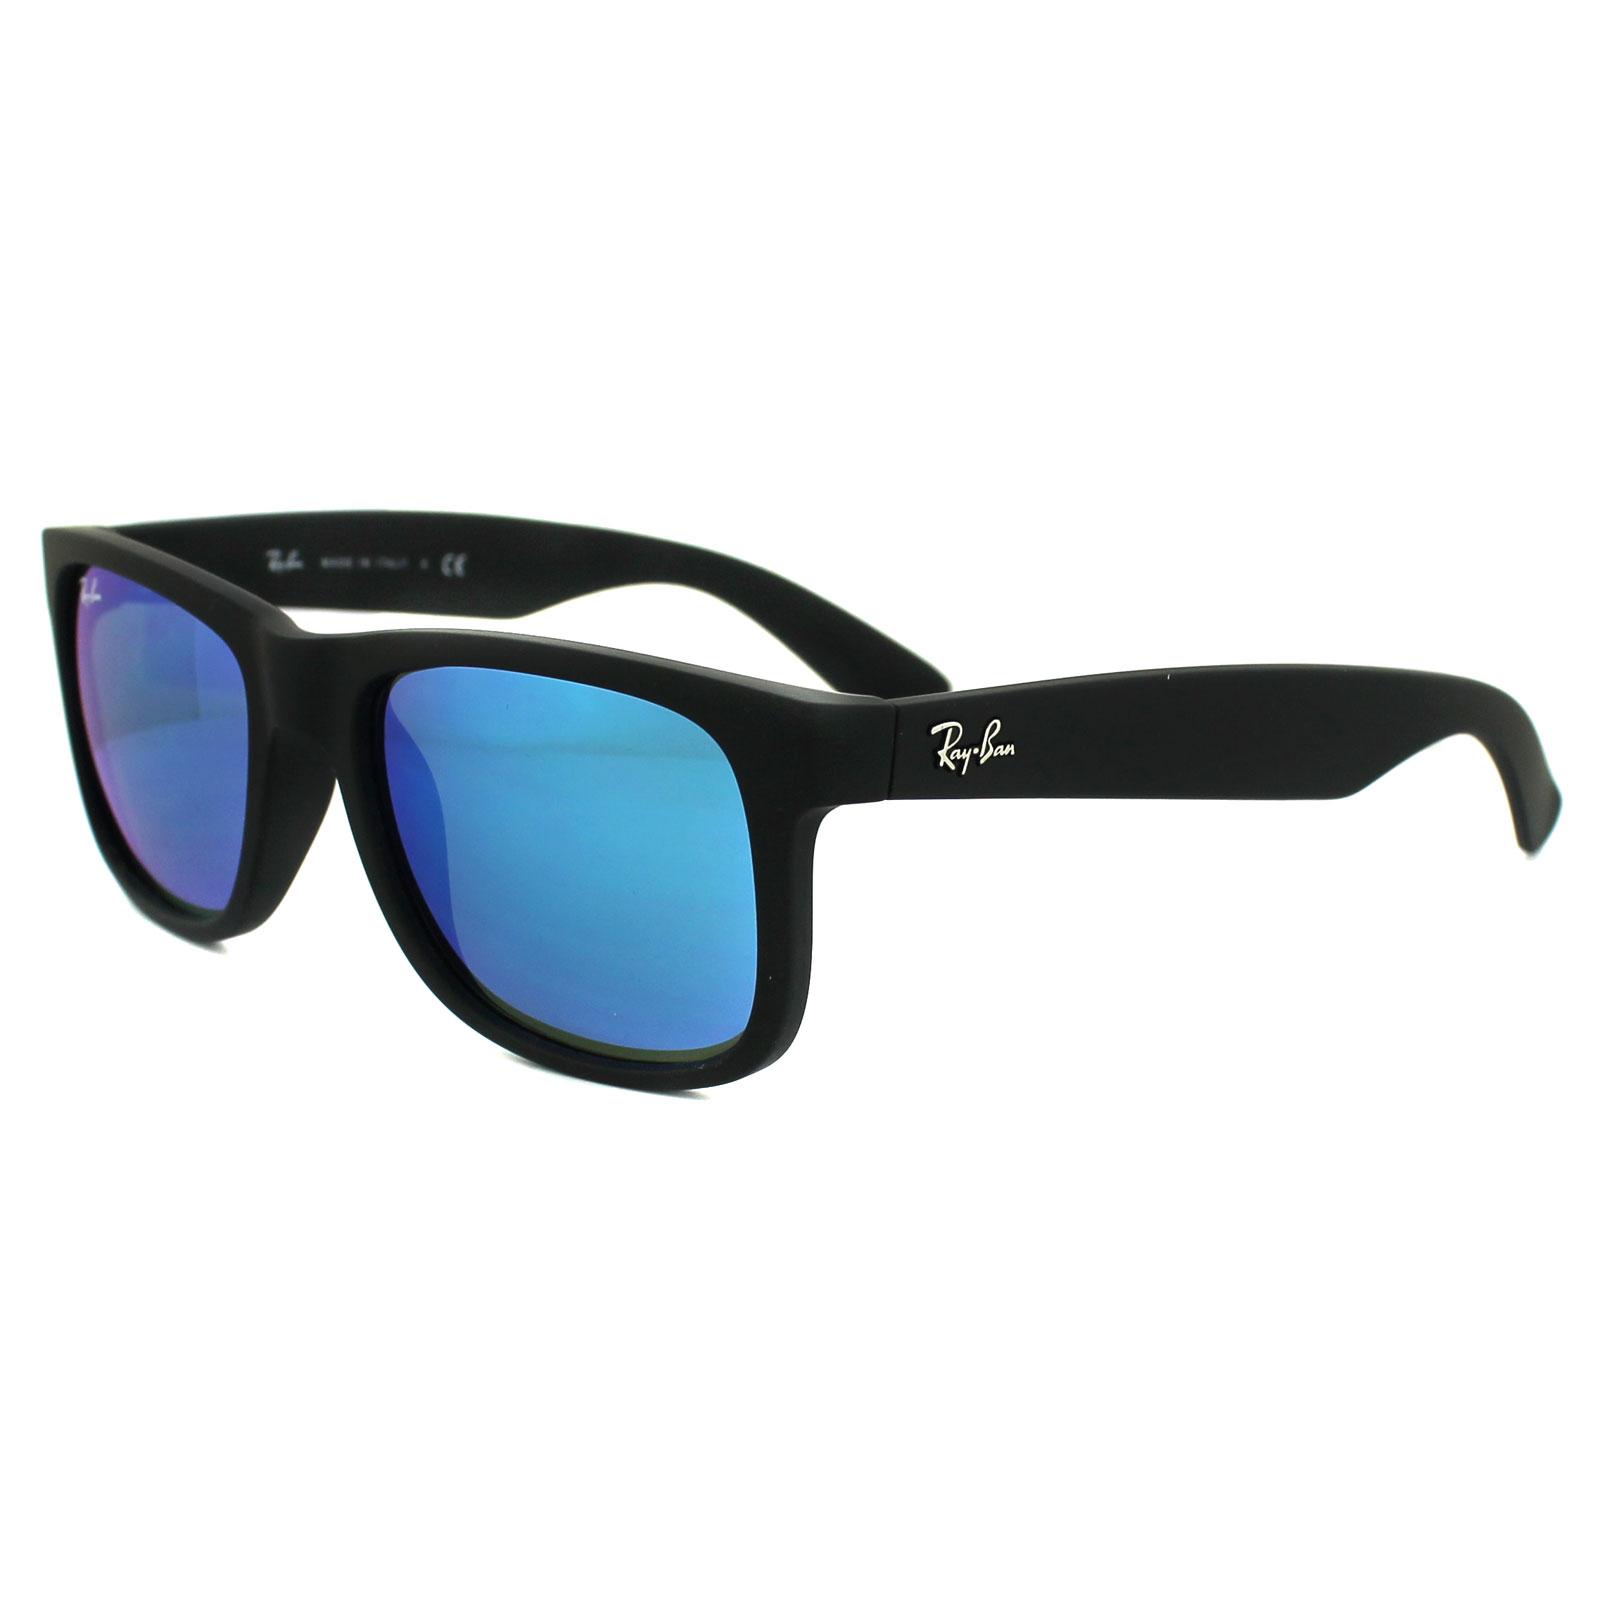 discounted ray bans sunglasses  discounted